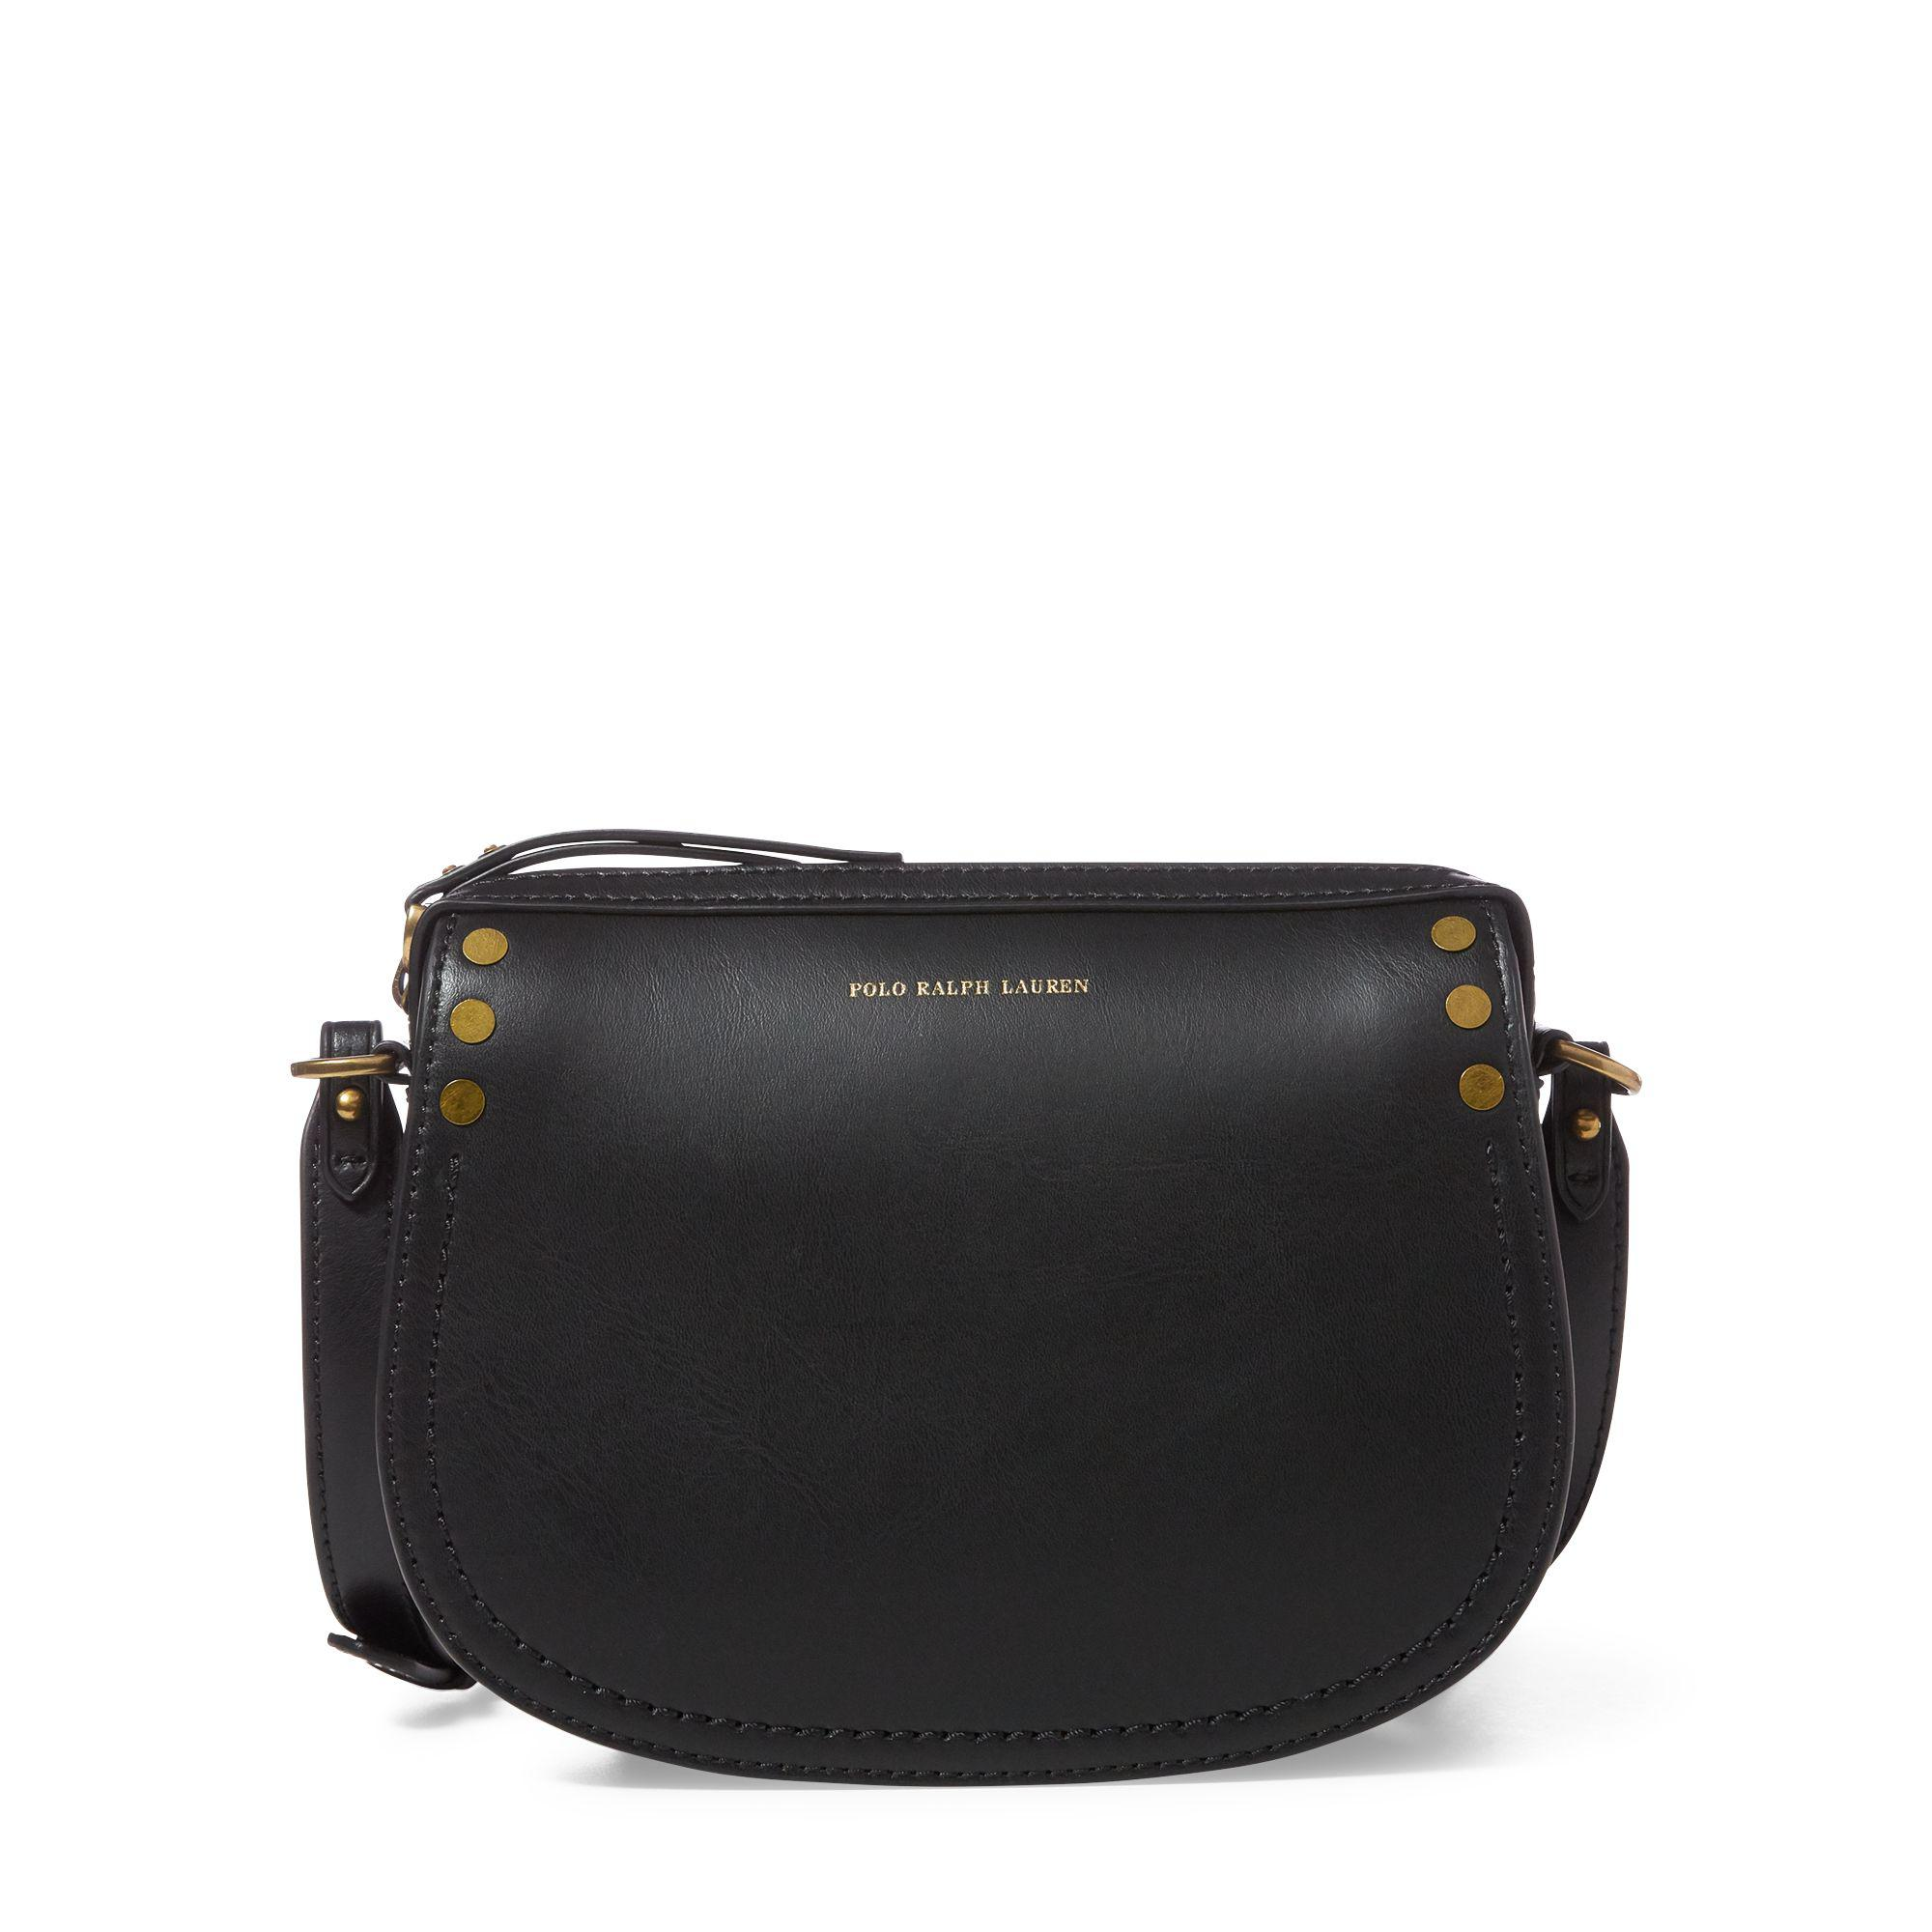 f2702aede66c Polo Ralph Lauren Calfskin Crossbody Bag in Black - Lyst